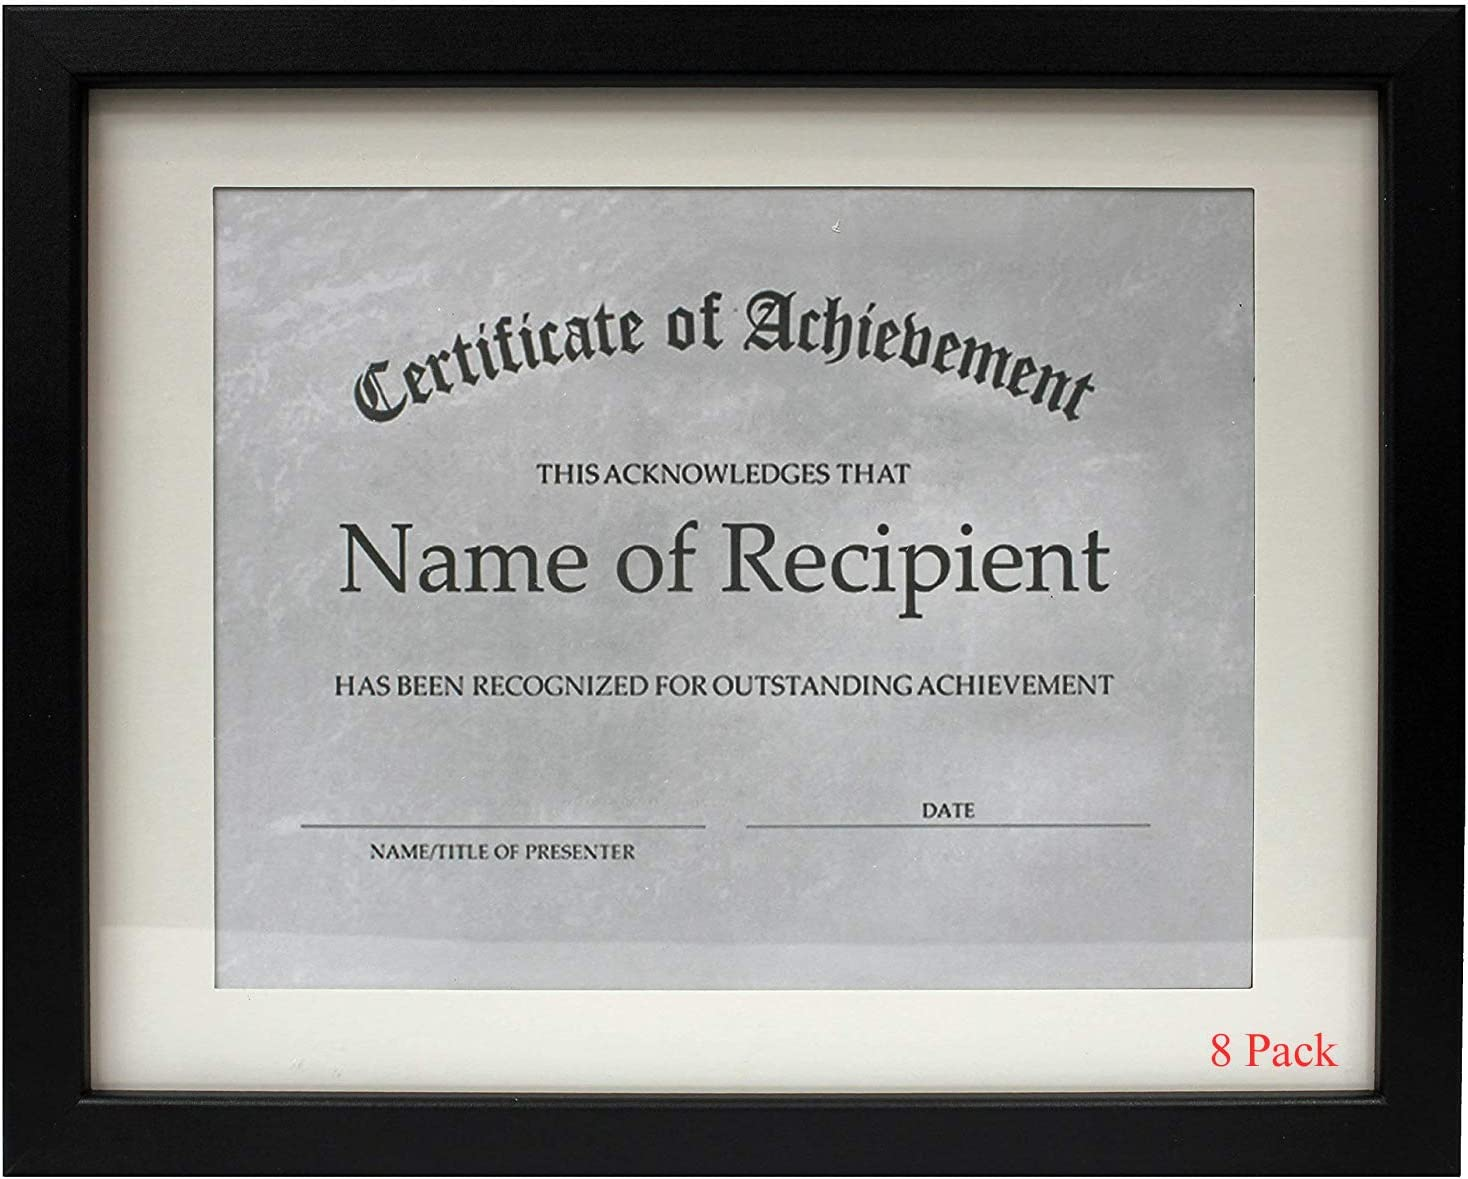 online shop DisplayGifts 11x14 Document Frame - or Made for Award a Certi